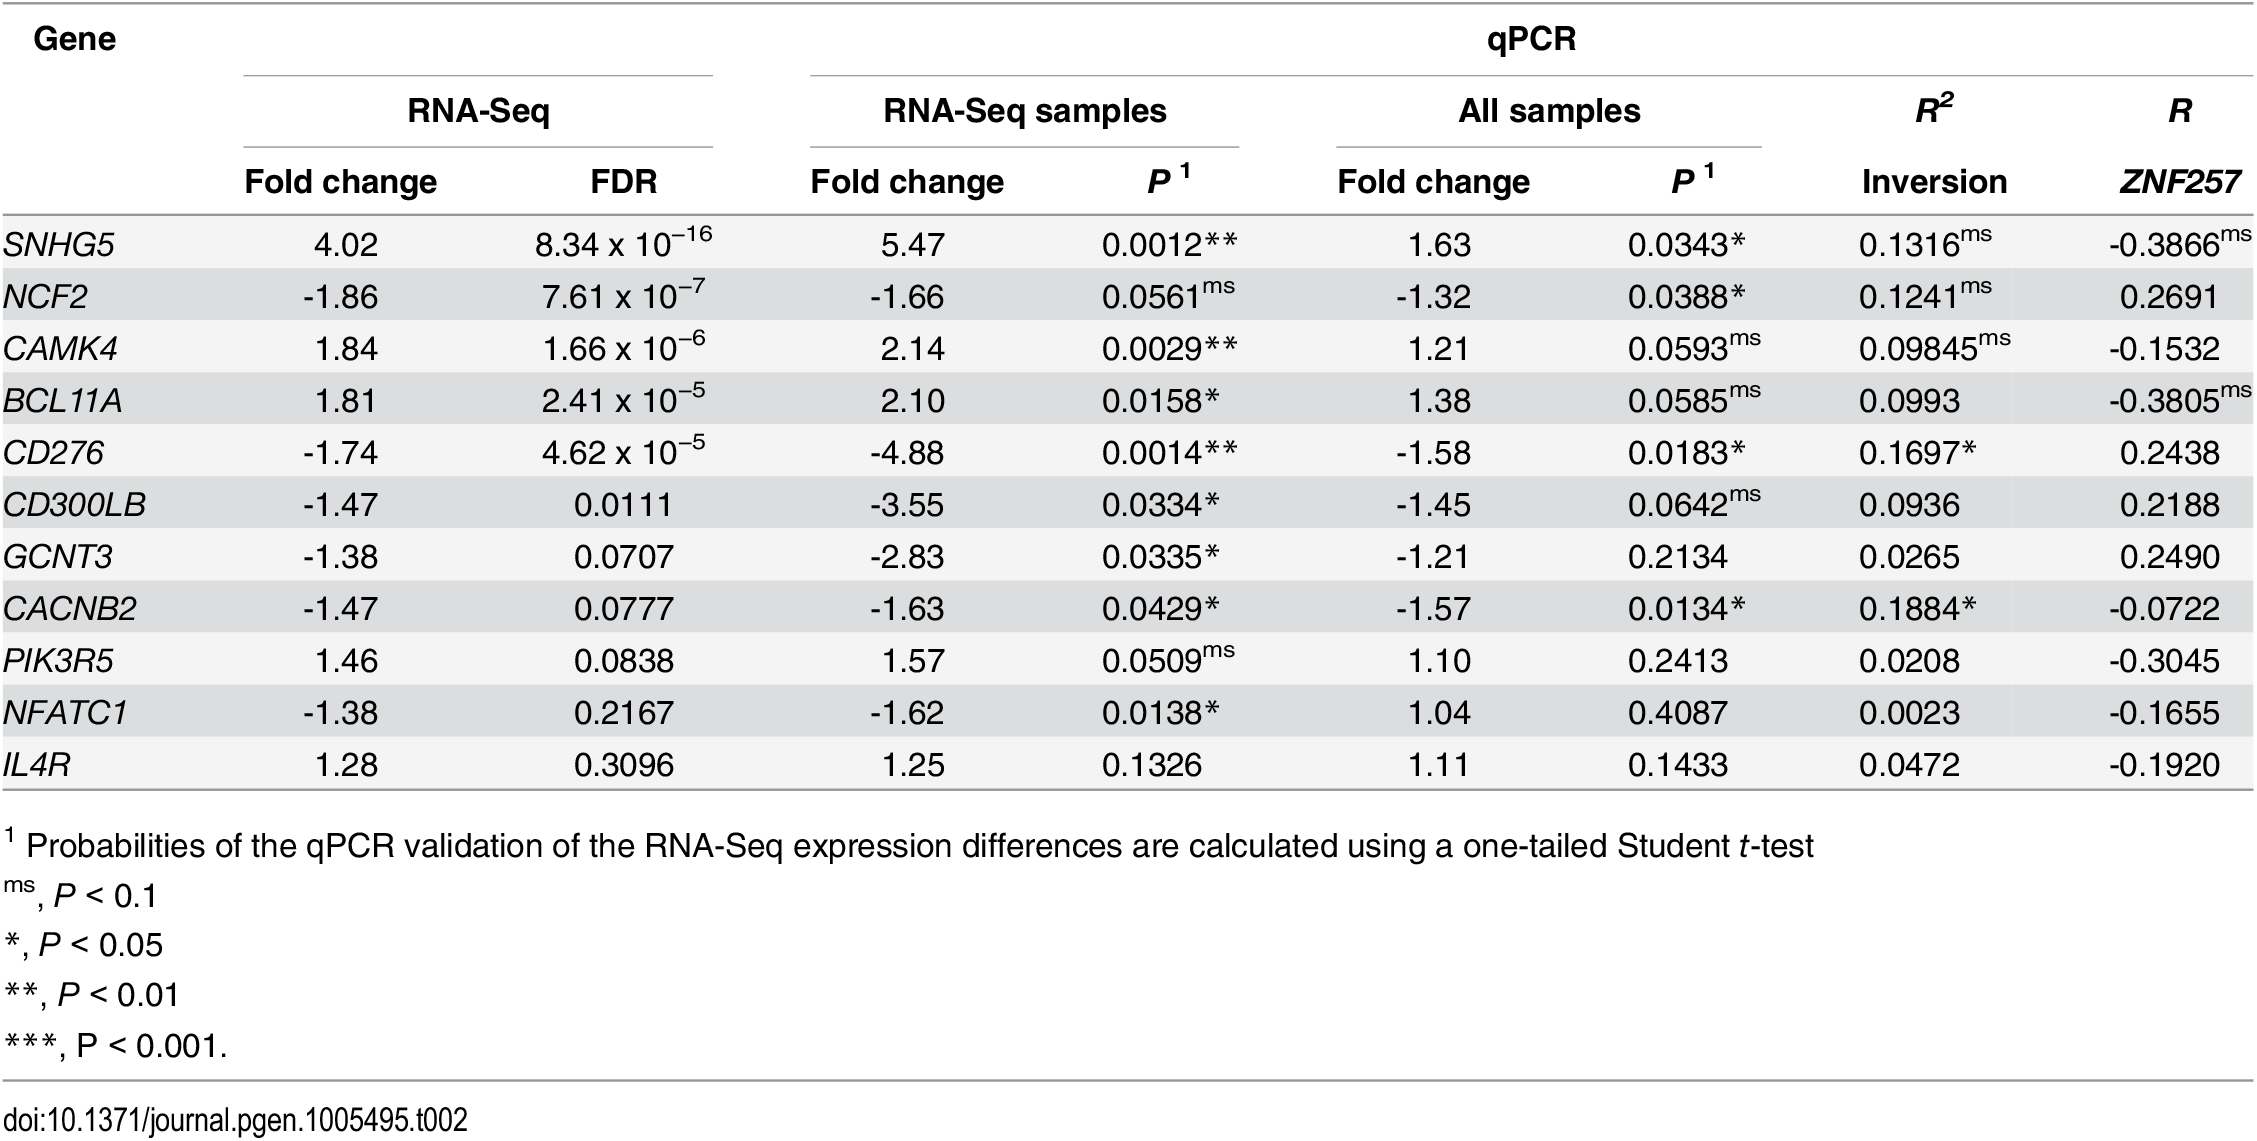 Analysis of RNA-Seq gene-expression changes between <i>Std/Std</i> and <i>Std/Inv</i> individuals by qPCR.